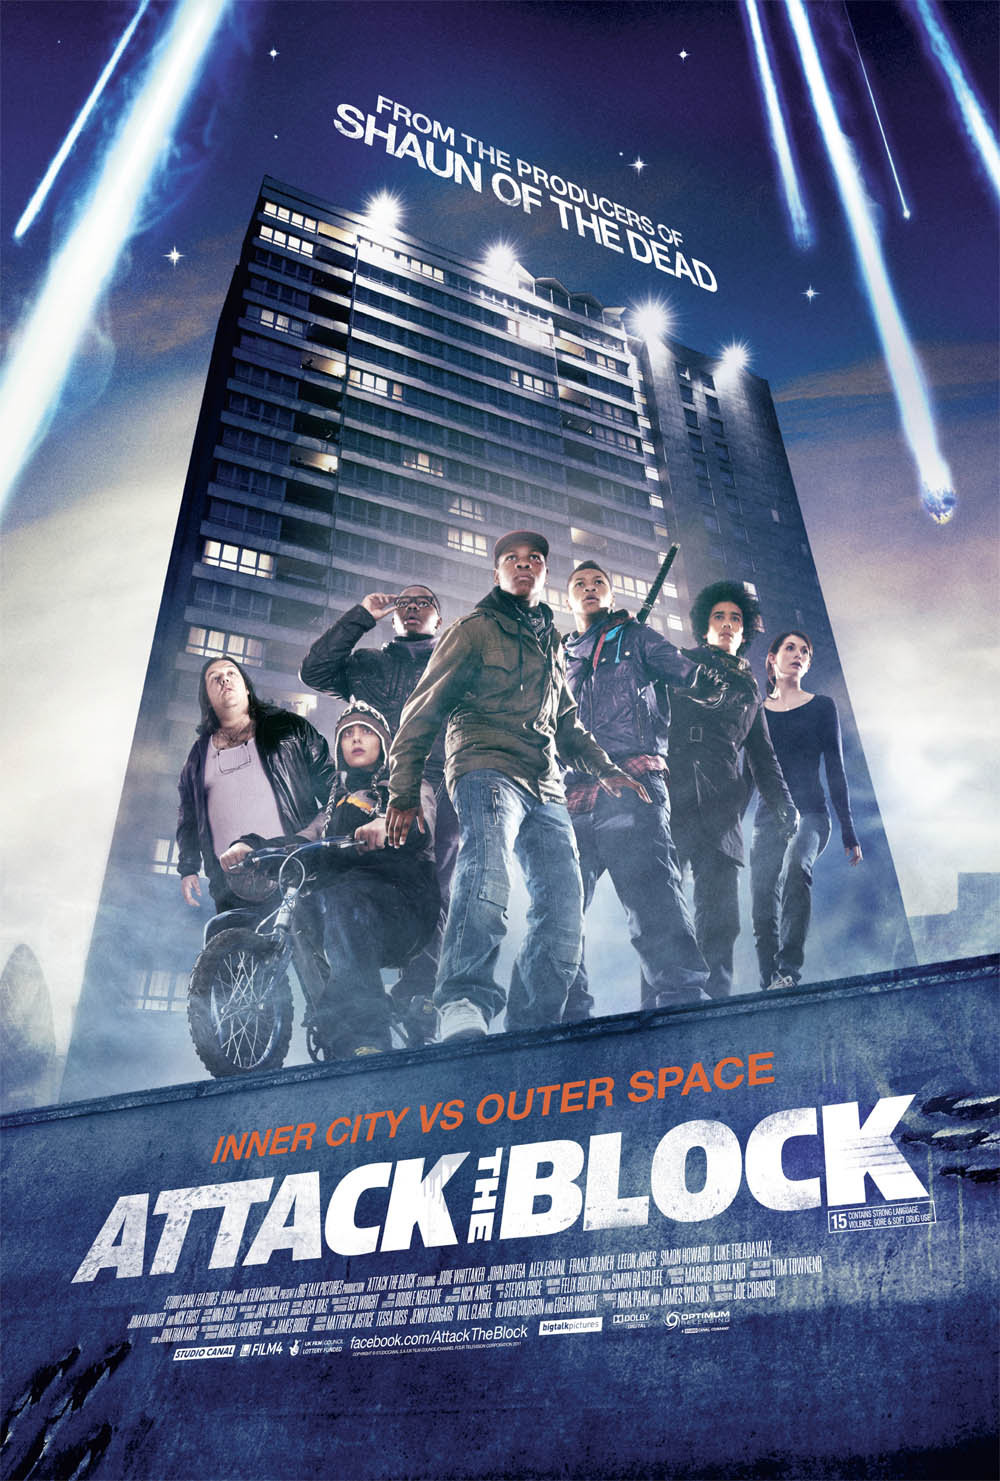 Movie Review: Trust Me, Bruv! 'Attack the Block' is the Best Time You'll have in a Theater this Year